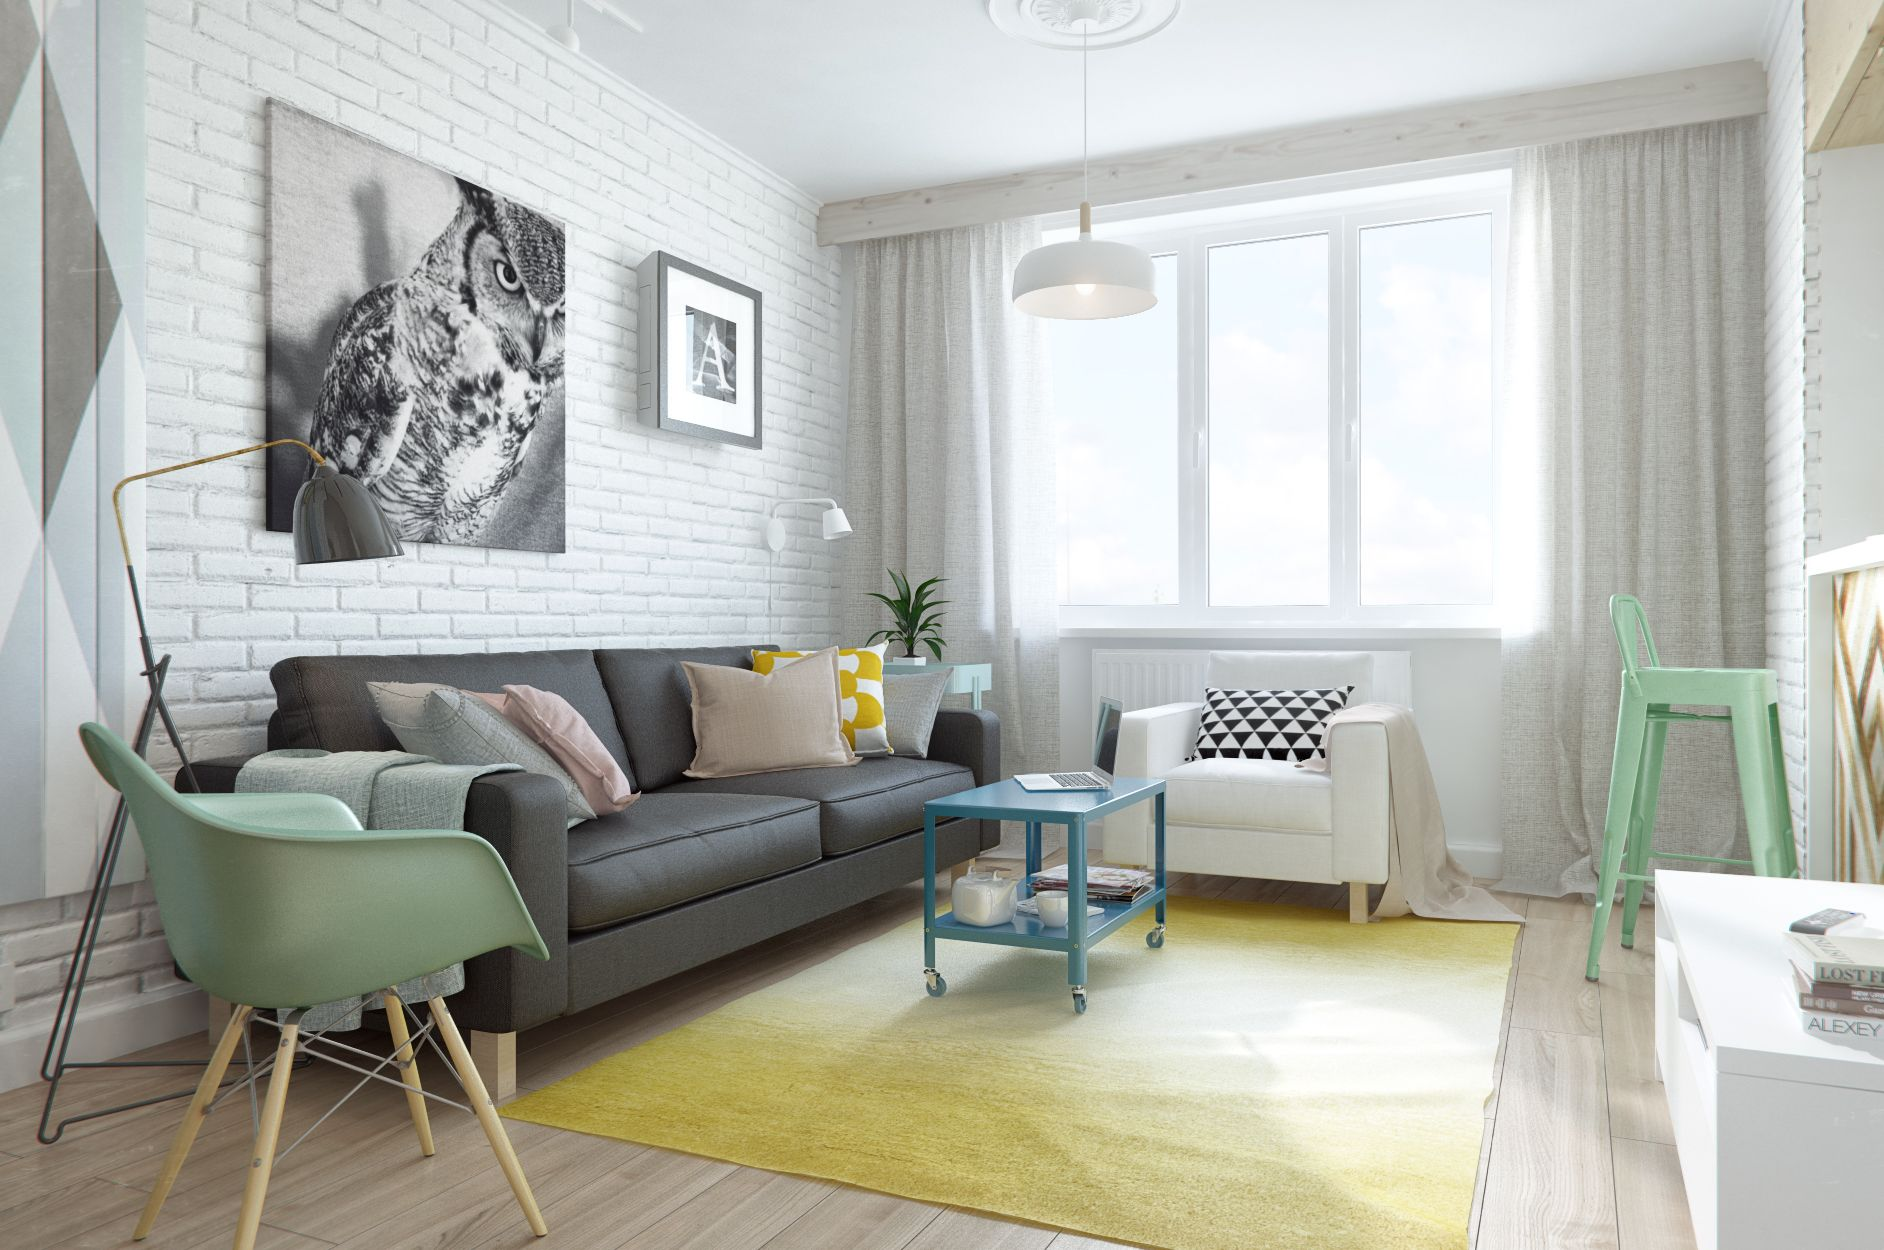 2 1-small-home-design-with-open-bedroom-with-curtain-separator-and-blue-wooden-coffee-table-with-white-brick-wall